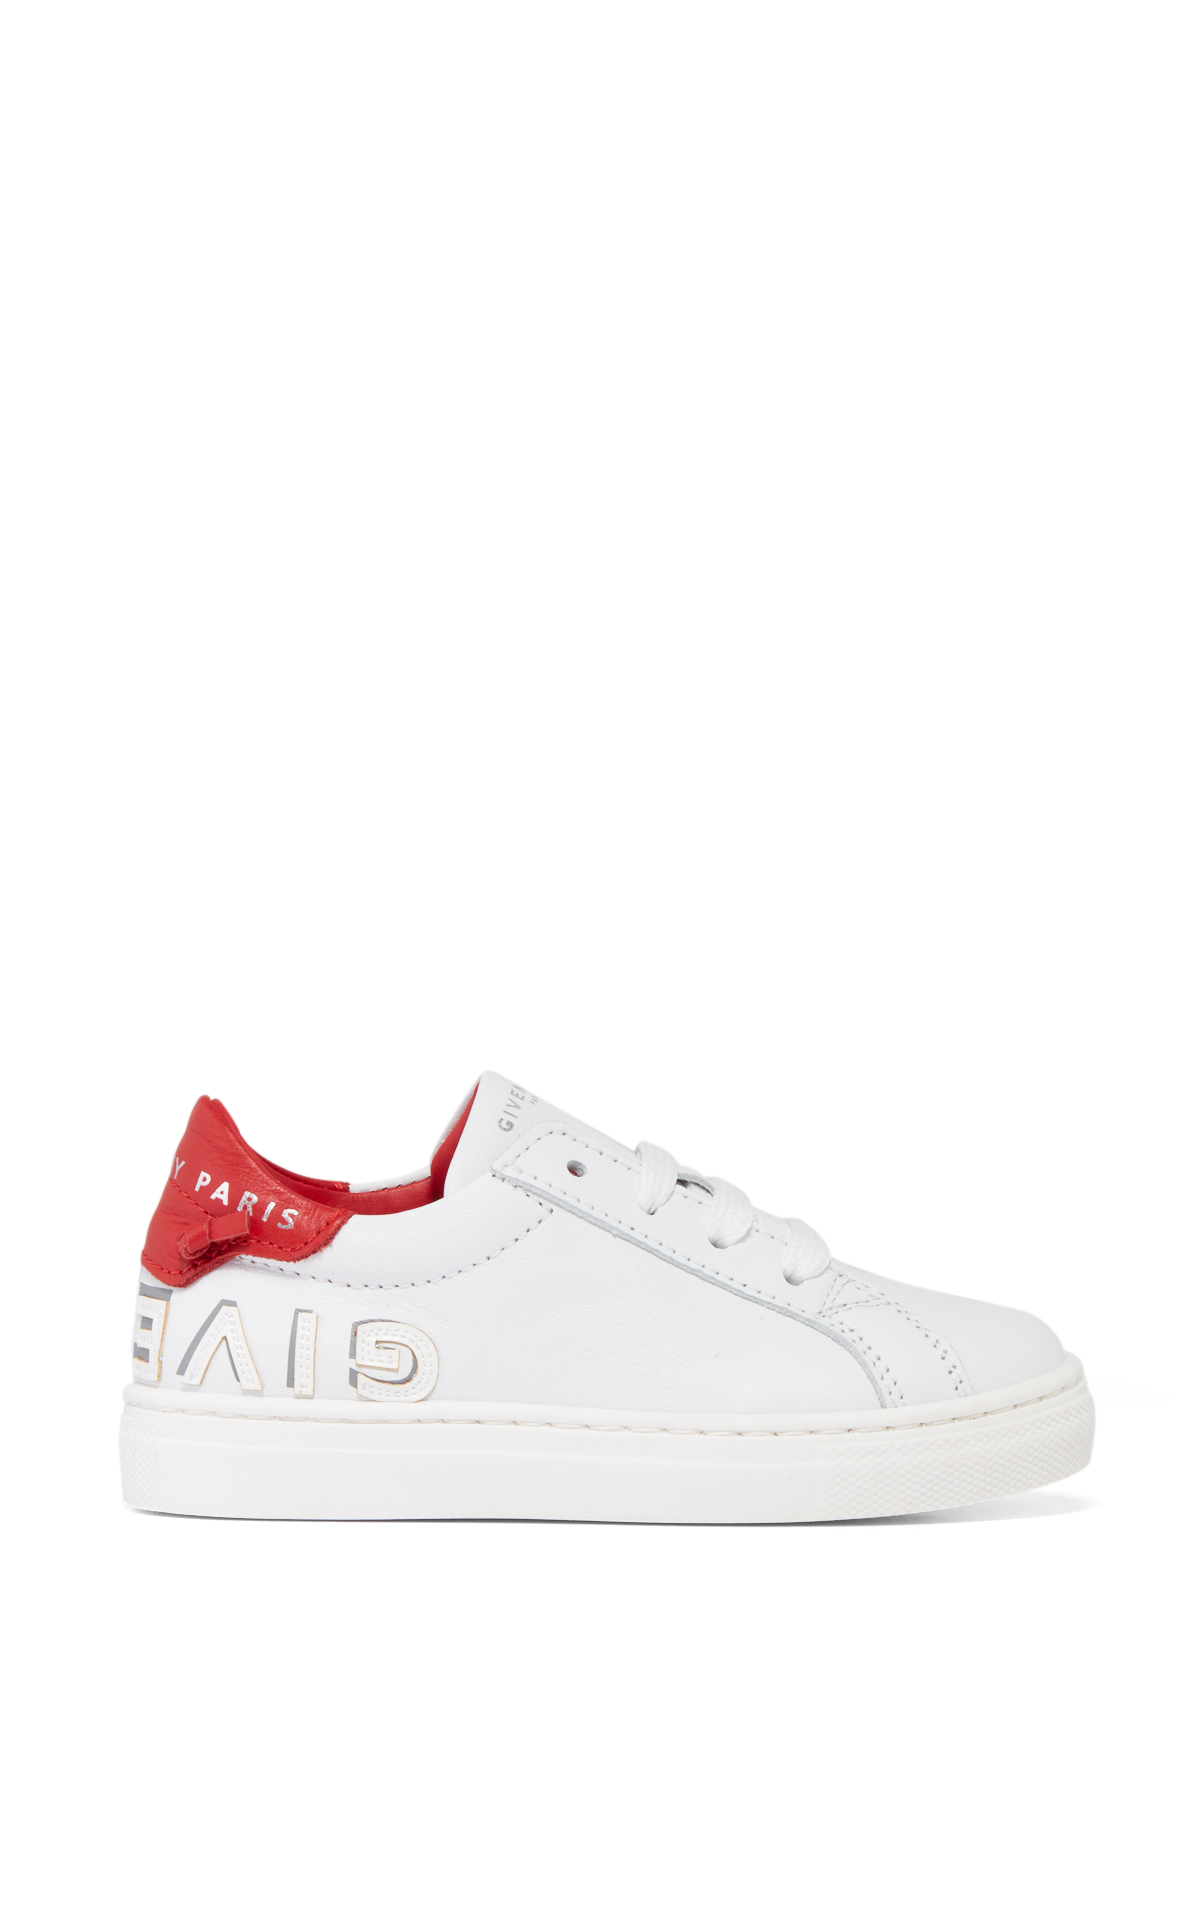 Givenchy kids Girl's white sneakers*